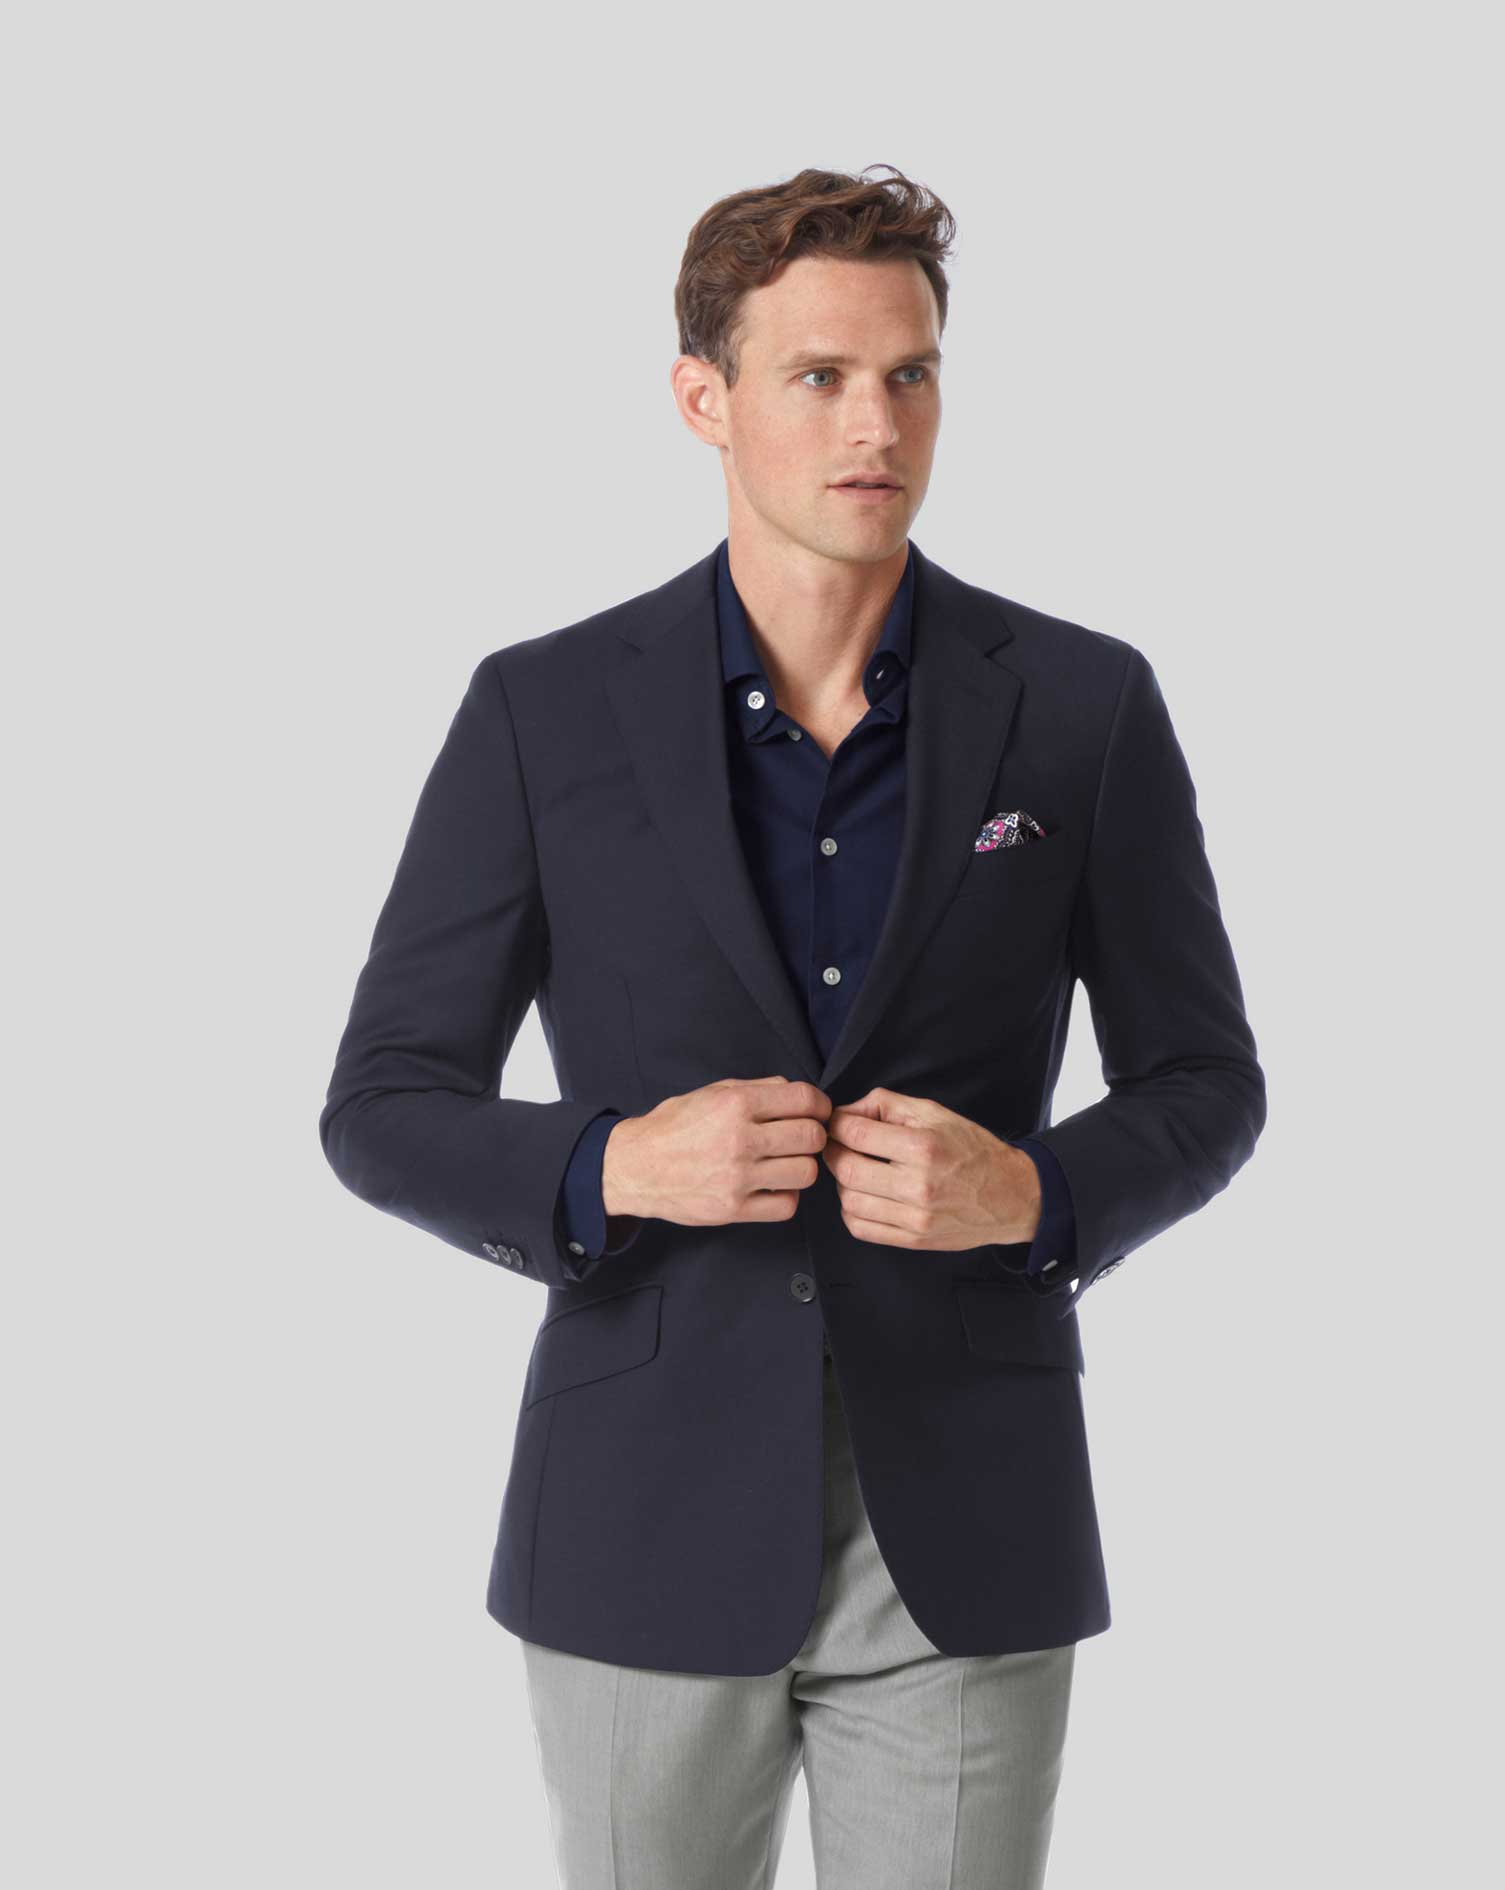 Men's Jackets, Coats, Sports jackets & Outerwear | Charles Tyrwhitt